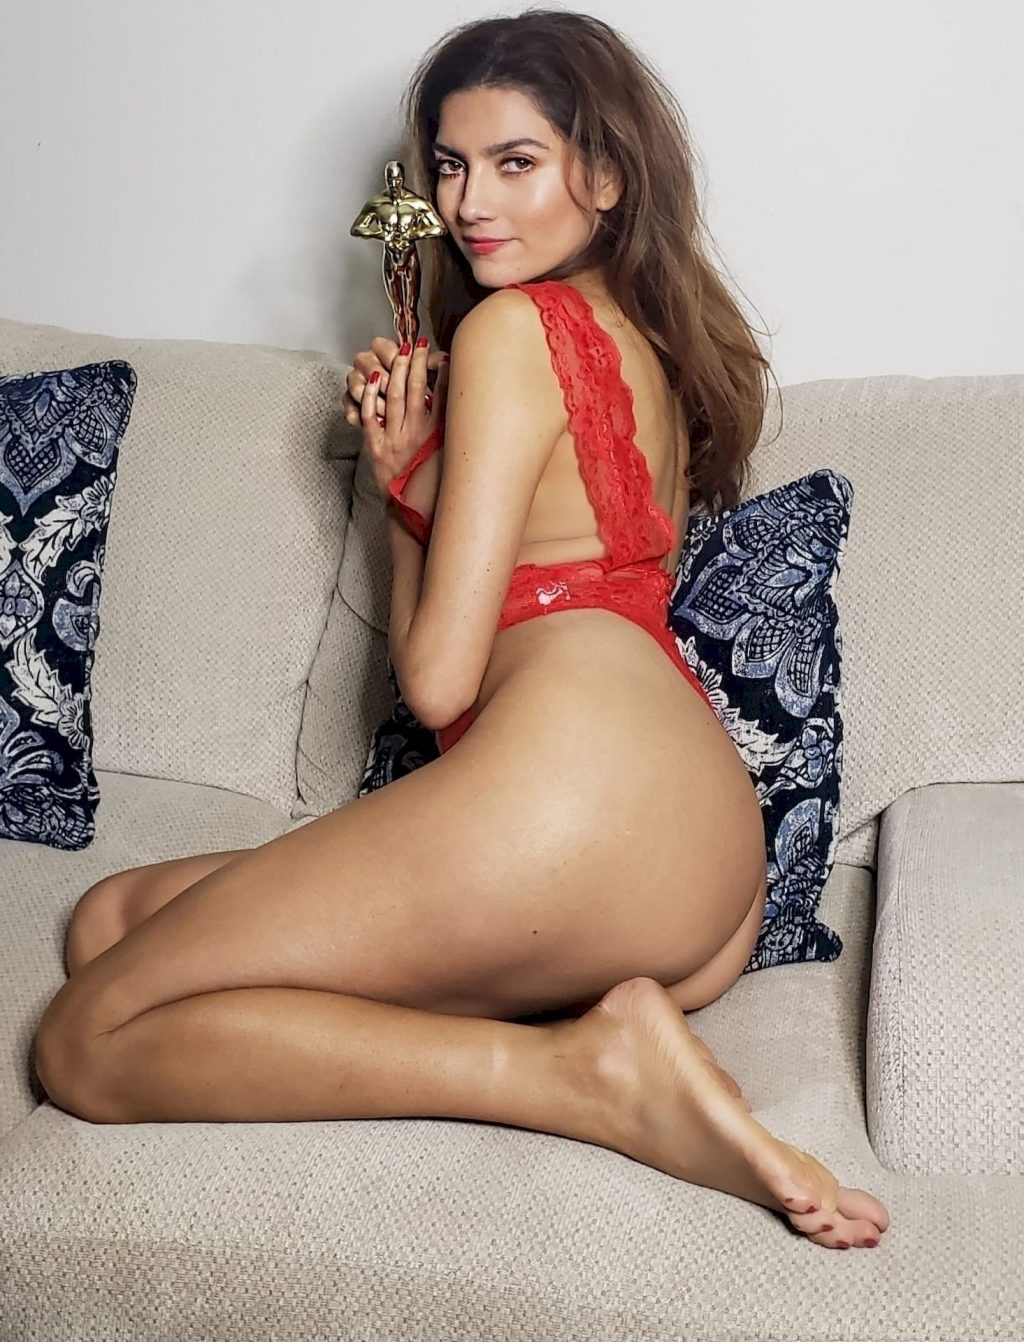 Blanca Blanco Poses in a Sexy Red Lingerie for The Oscars (9 Photos)